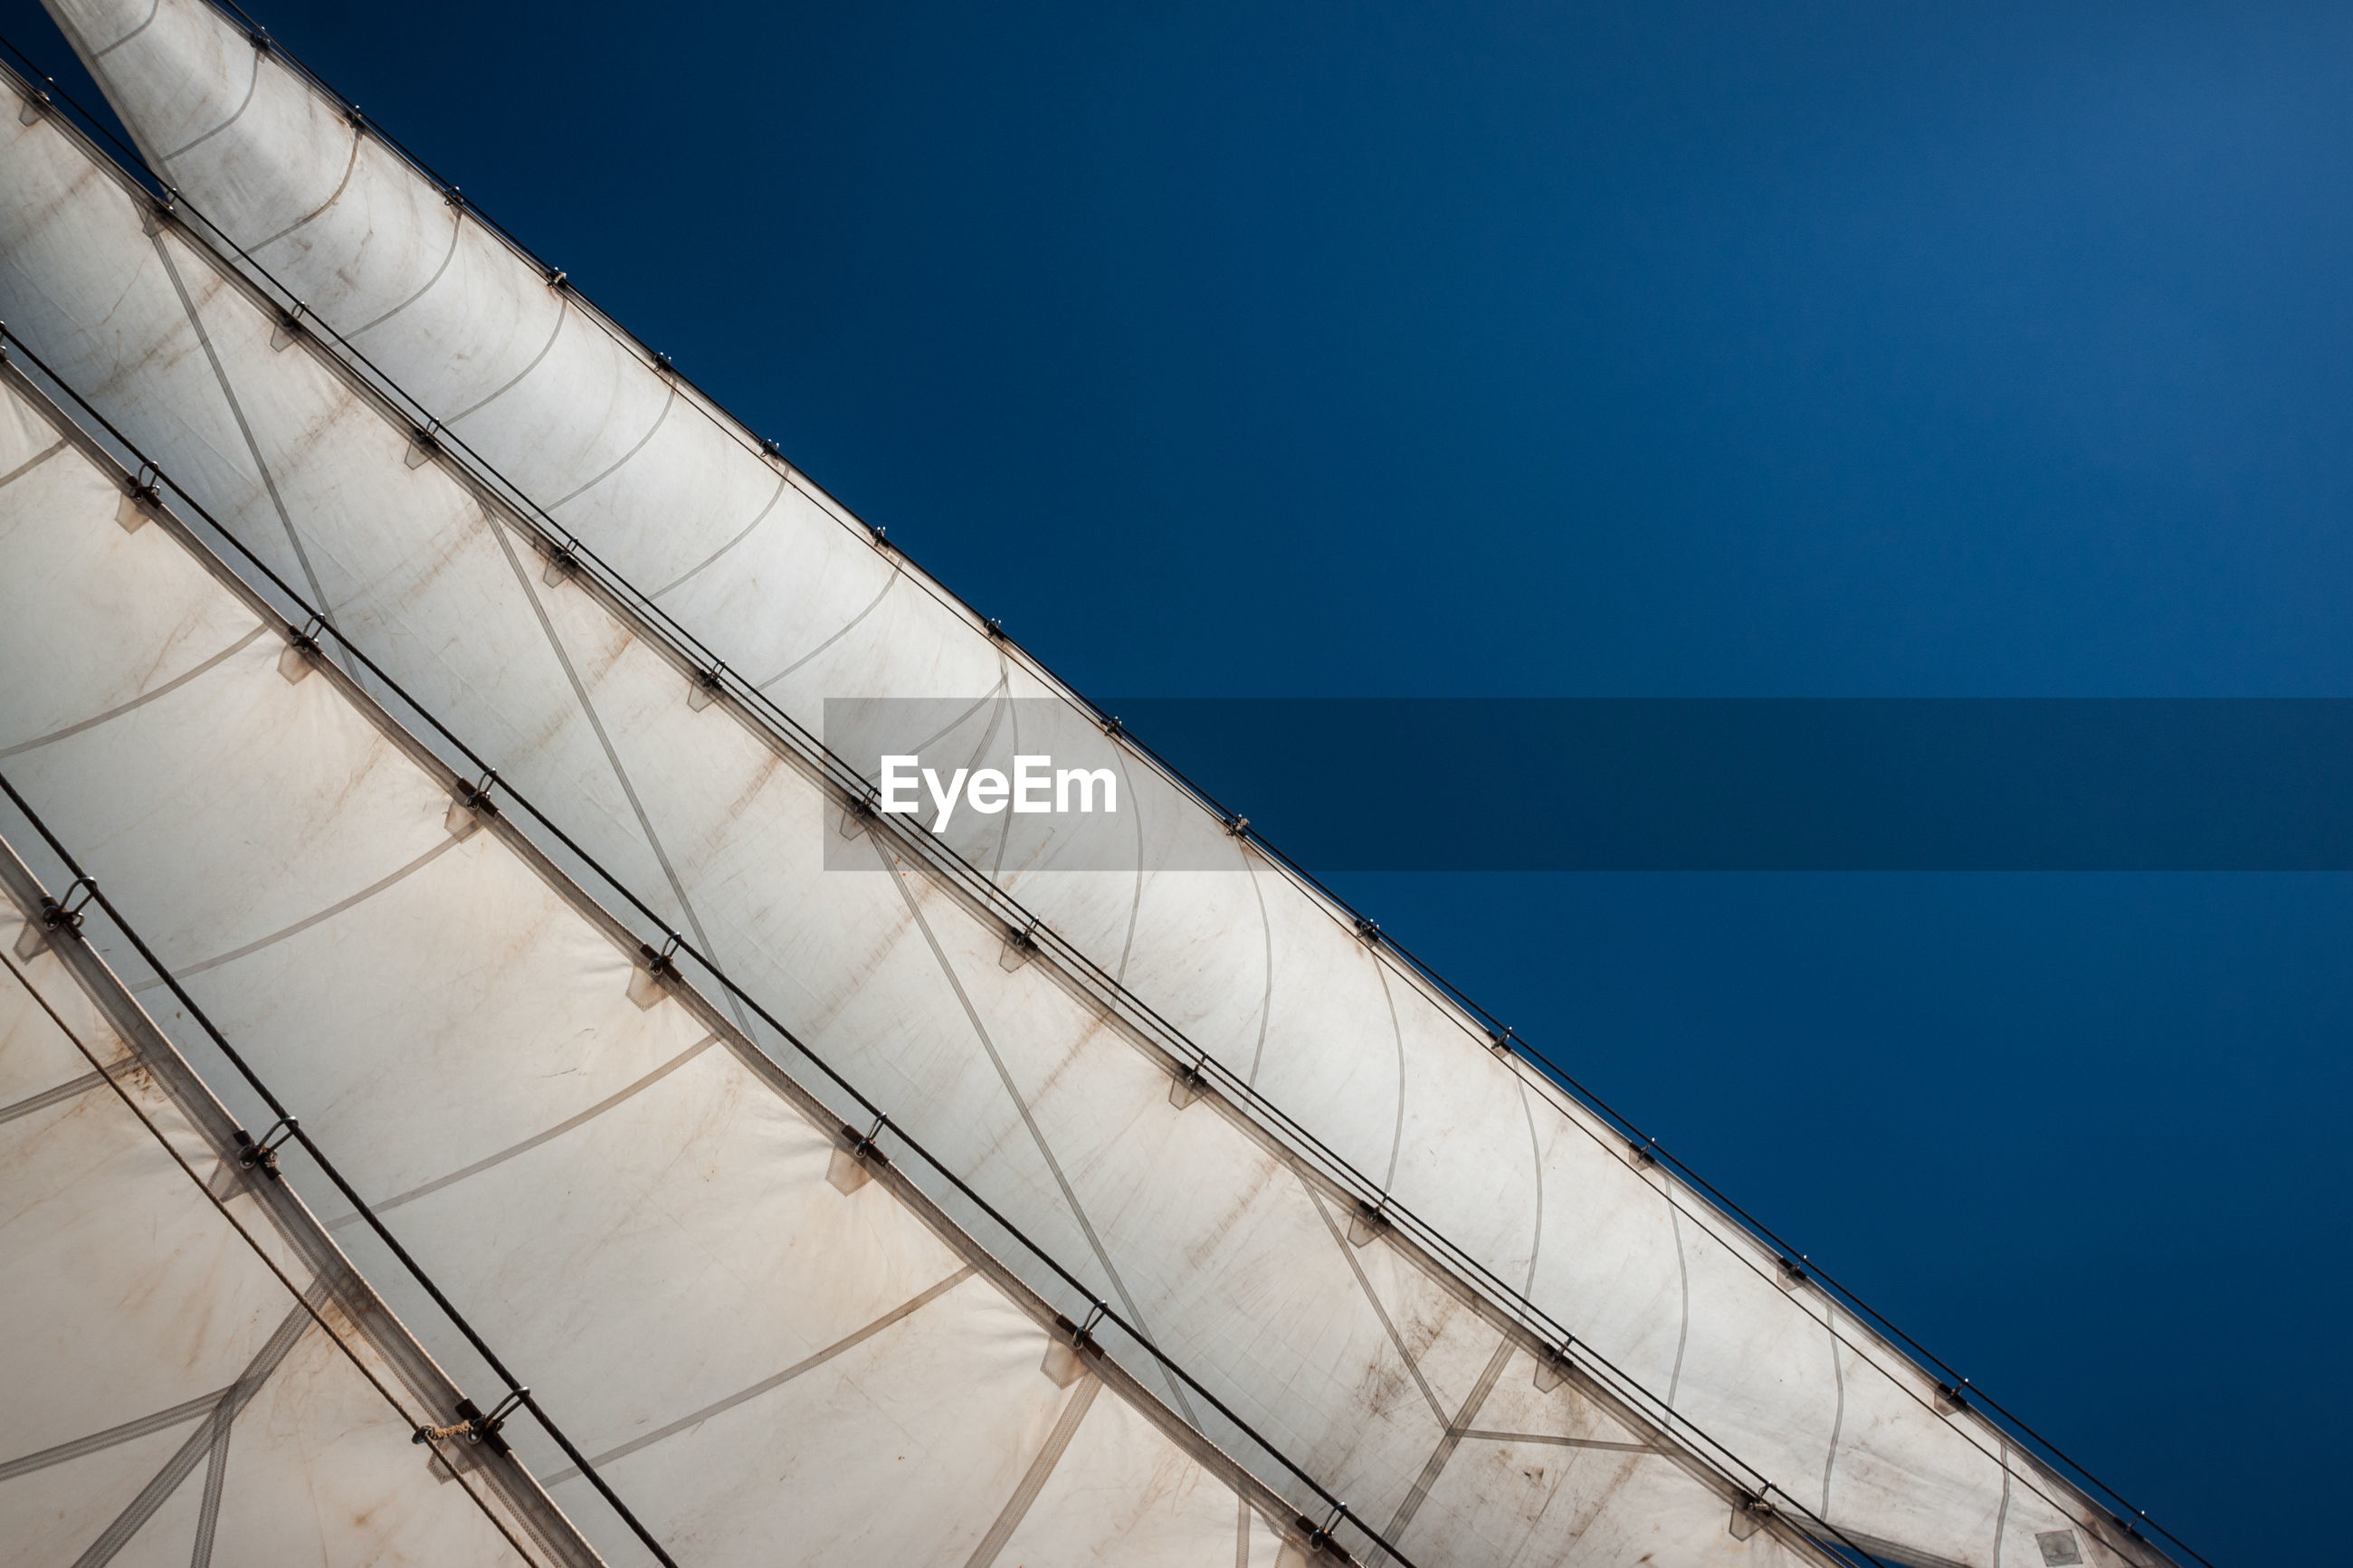 Low angle view of sailboat against clear blue sky